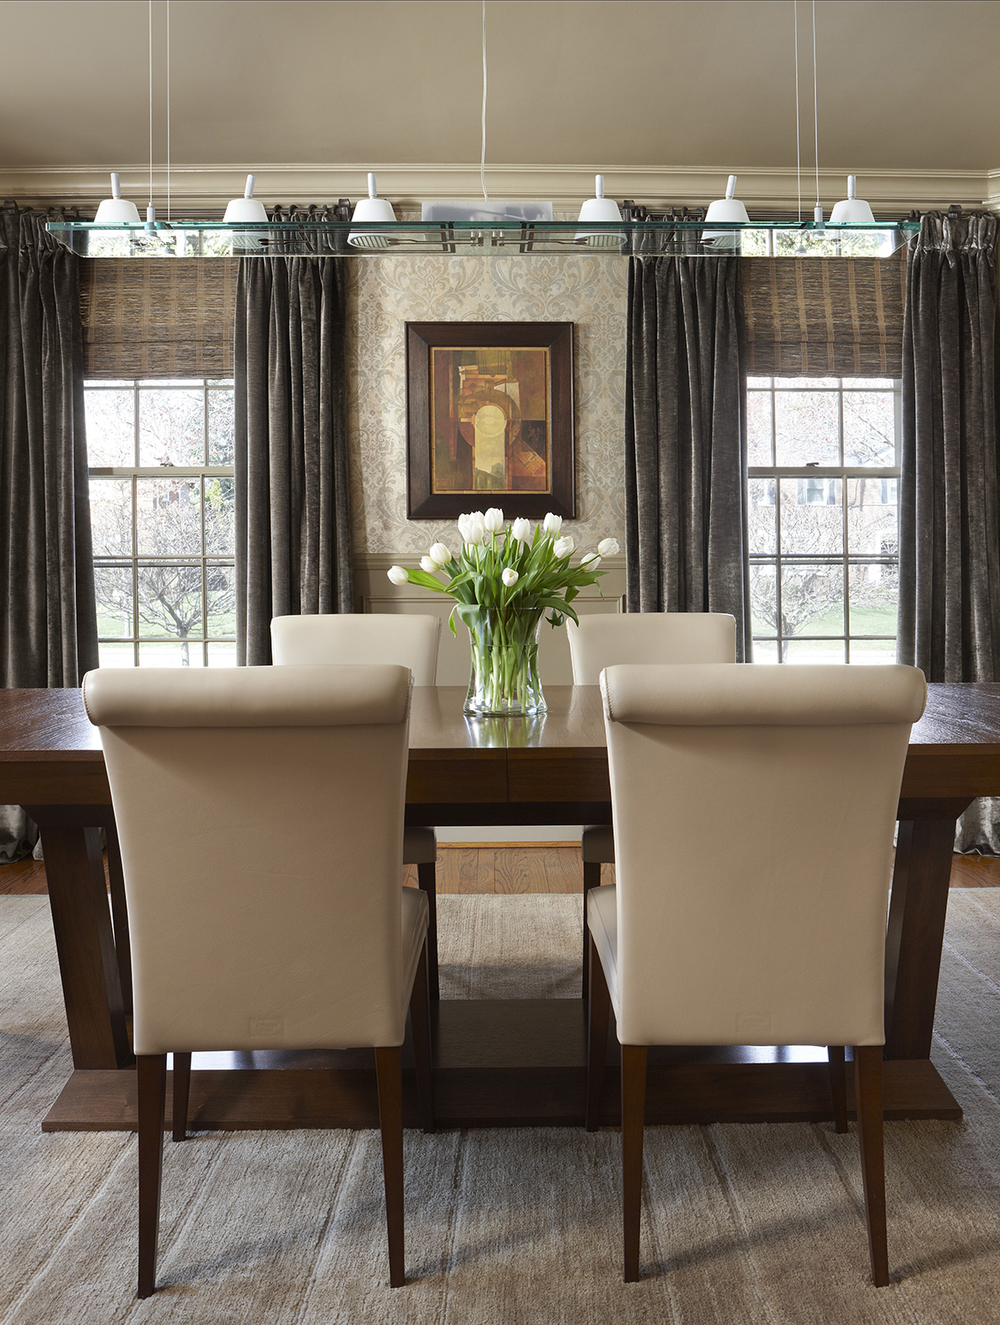 "The goal in this dining room was to give a nod to the couples' modern aesthetic while maintaining the architectural flow from outside this Colonial home. Our concept was that a young couple had inherited a Venetian palazzo. First, we raised the chair rail, and added some panel molding, then we applied a vintage looking damask wallcovering to add instant ""age."" Dramatic green silk vintage linen velvet drapery and grass shades add texture. In the center of it all, contemporary Italian furniture and lighting contrast, yet compliment, the rest of the room. Photo by Beth Singer."